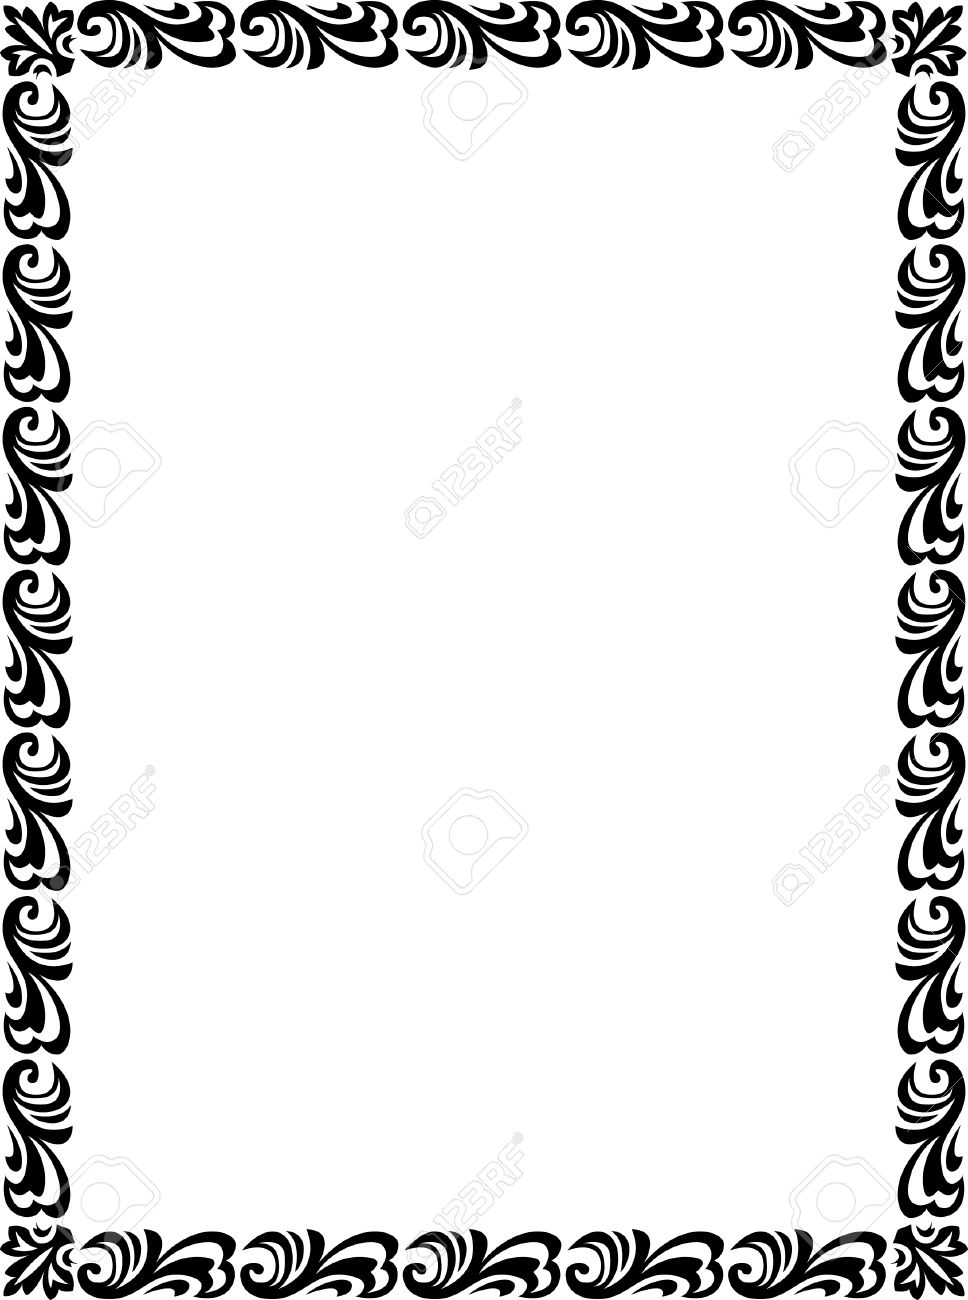 Islamic borders and frames vector free download real clipart and islamic borders and frames vector free download images gallery design border onwe bioinnovate co rh onwe bioinnovate co thecheapjerseys Image collections